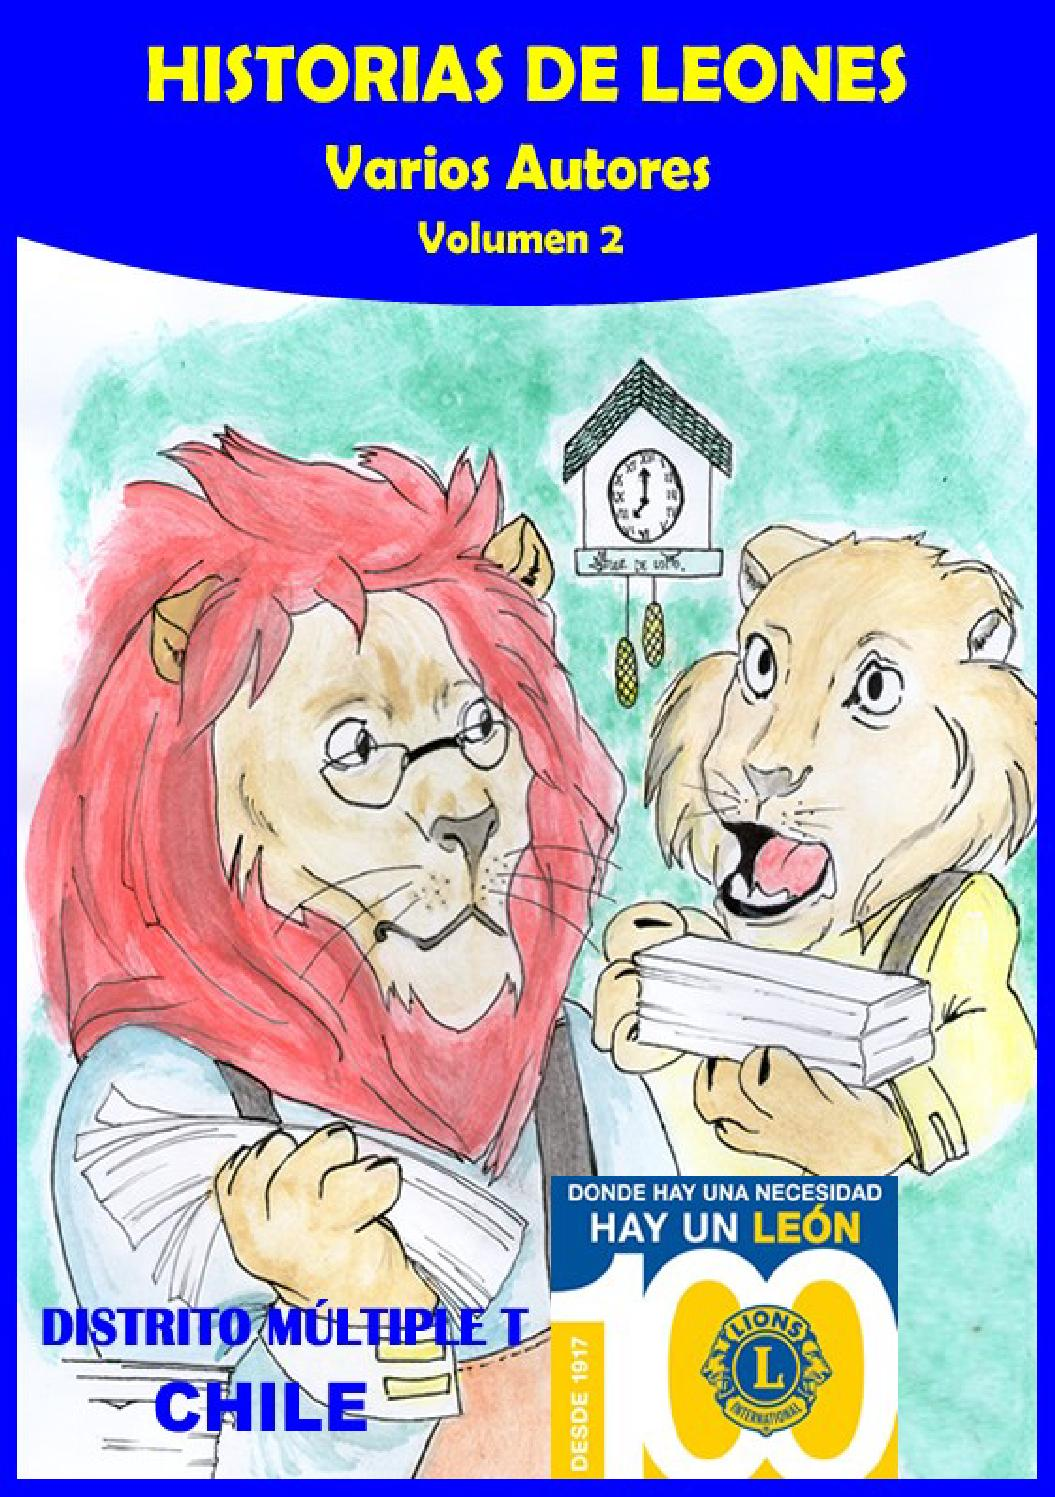 Historias de Leones (volumen II) by club leones - issuu